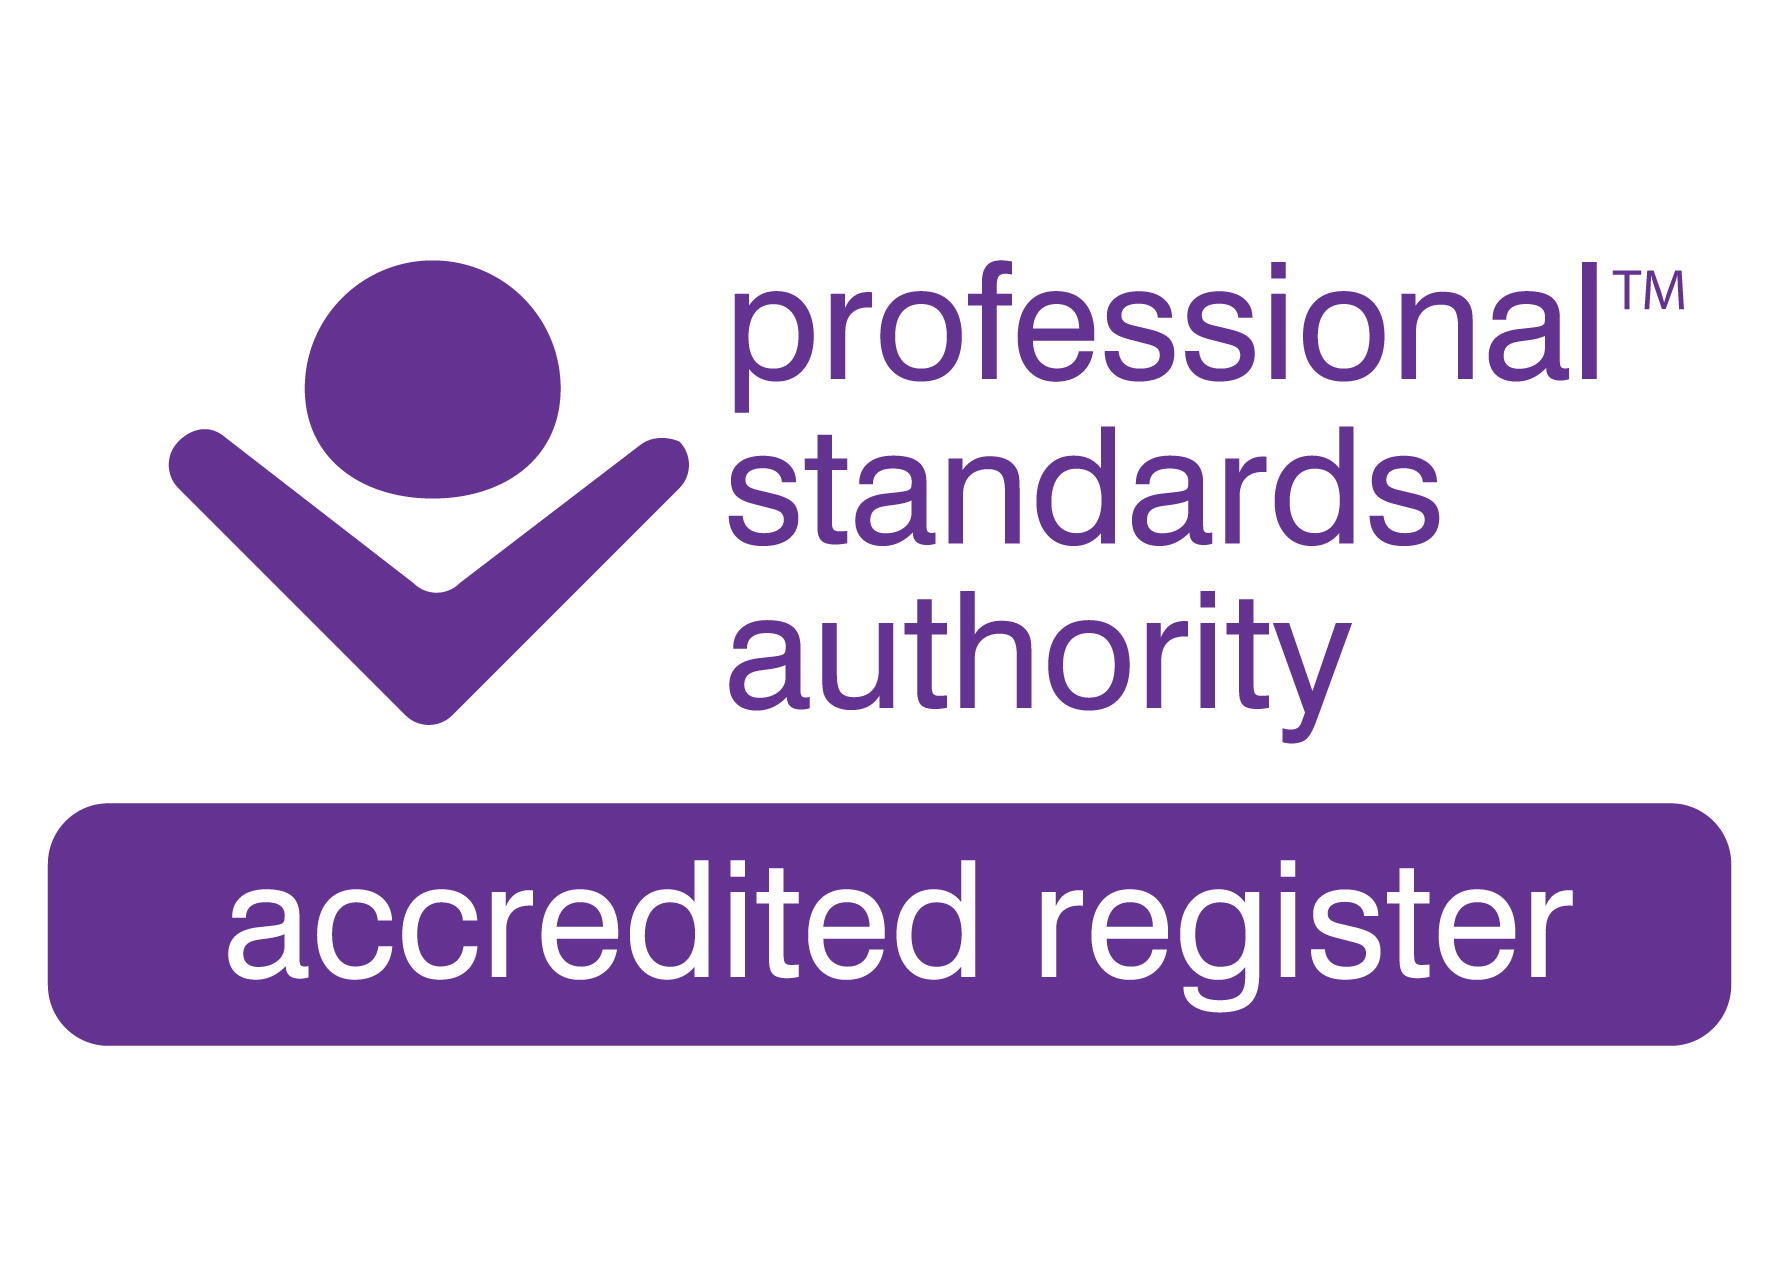 service quality standards in health and social care Health and social care who regulates health services under the health and social care act proper standards are maintained by health and social care.